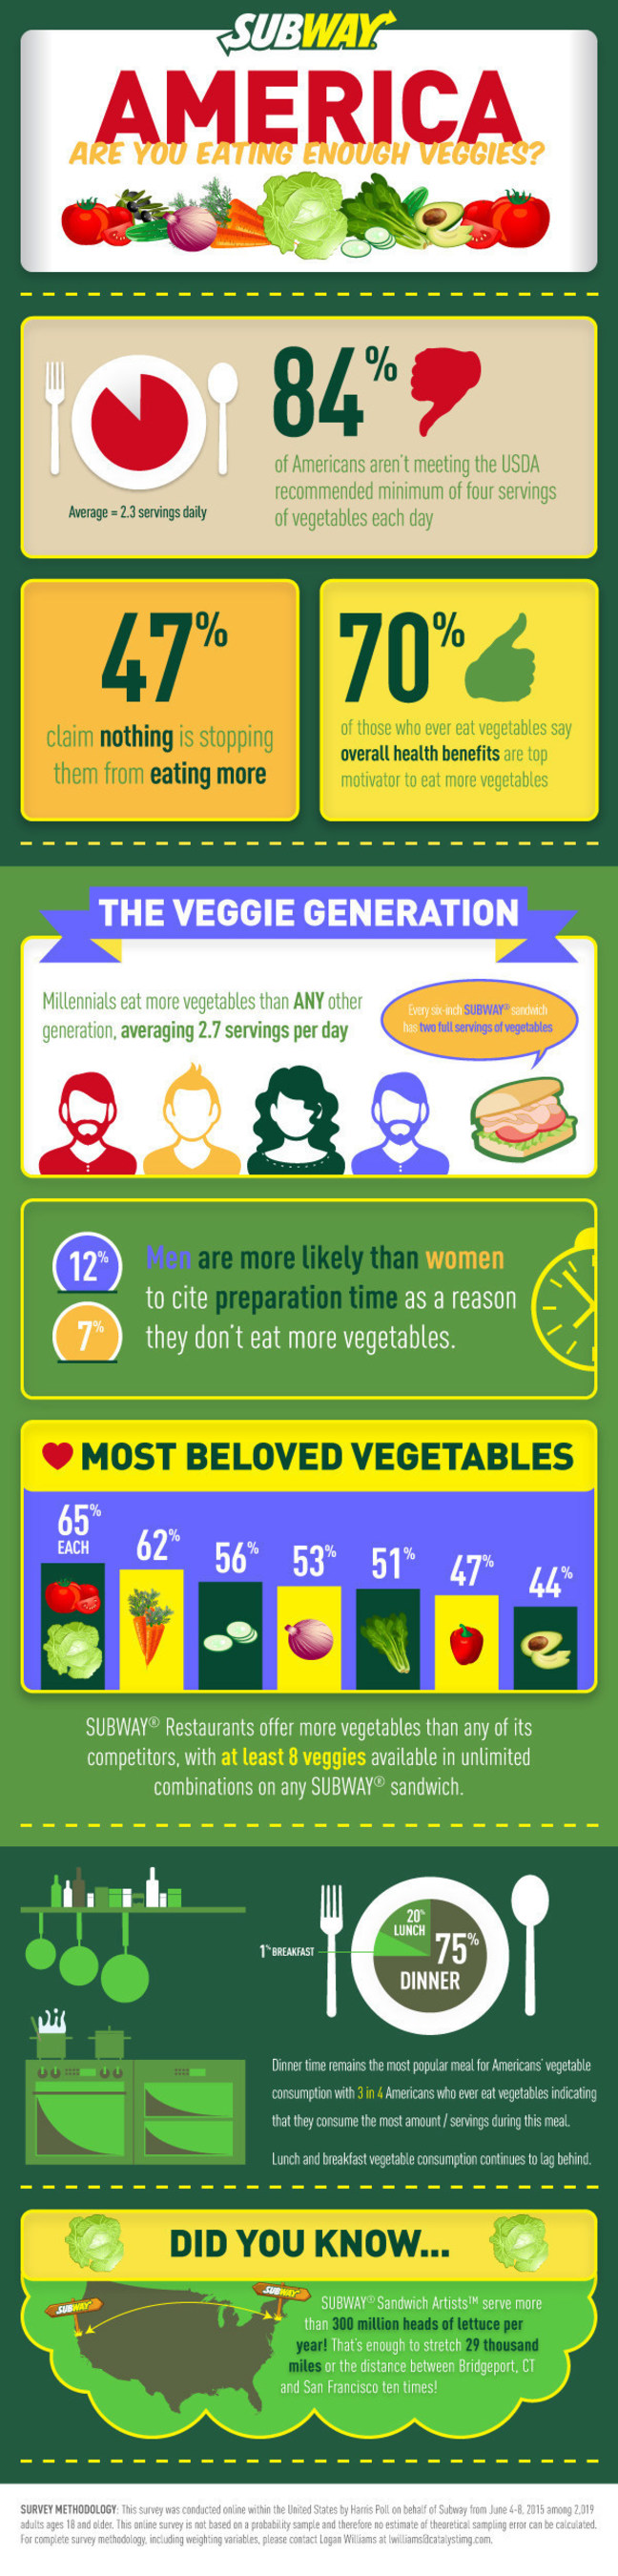 SUBWAY Restaurants' National Eat Your Vegetables Day Survey Examines Americans Vegetable Consumption Trends